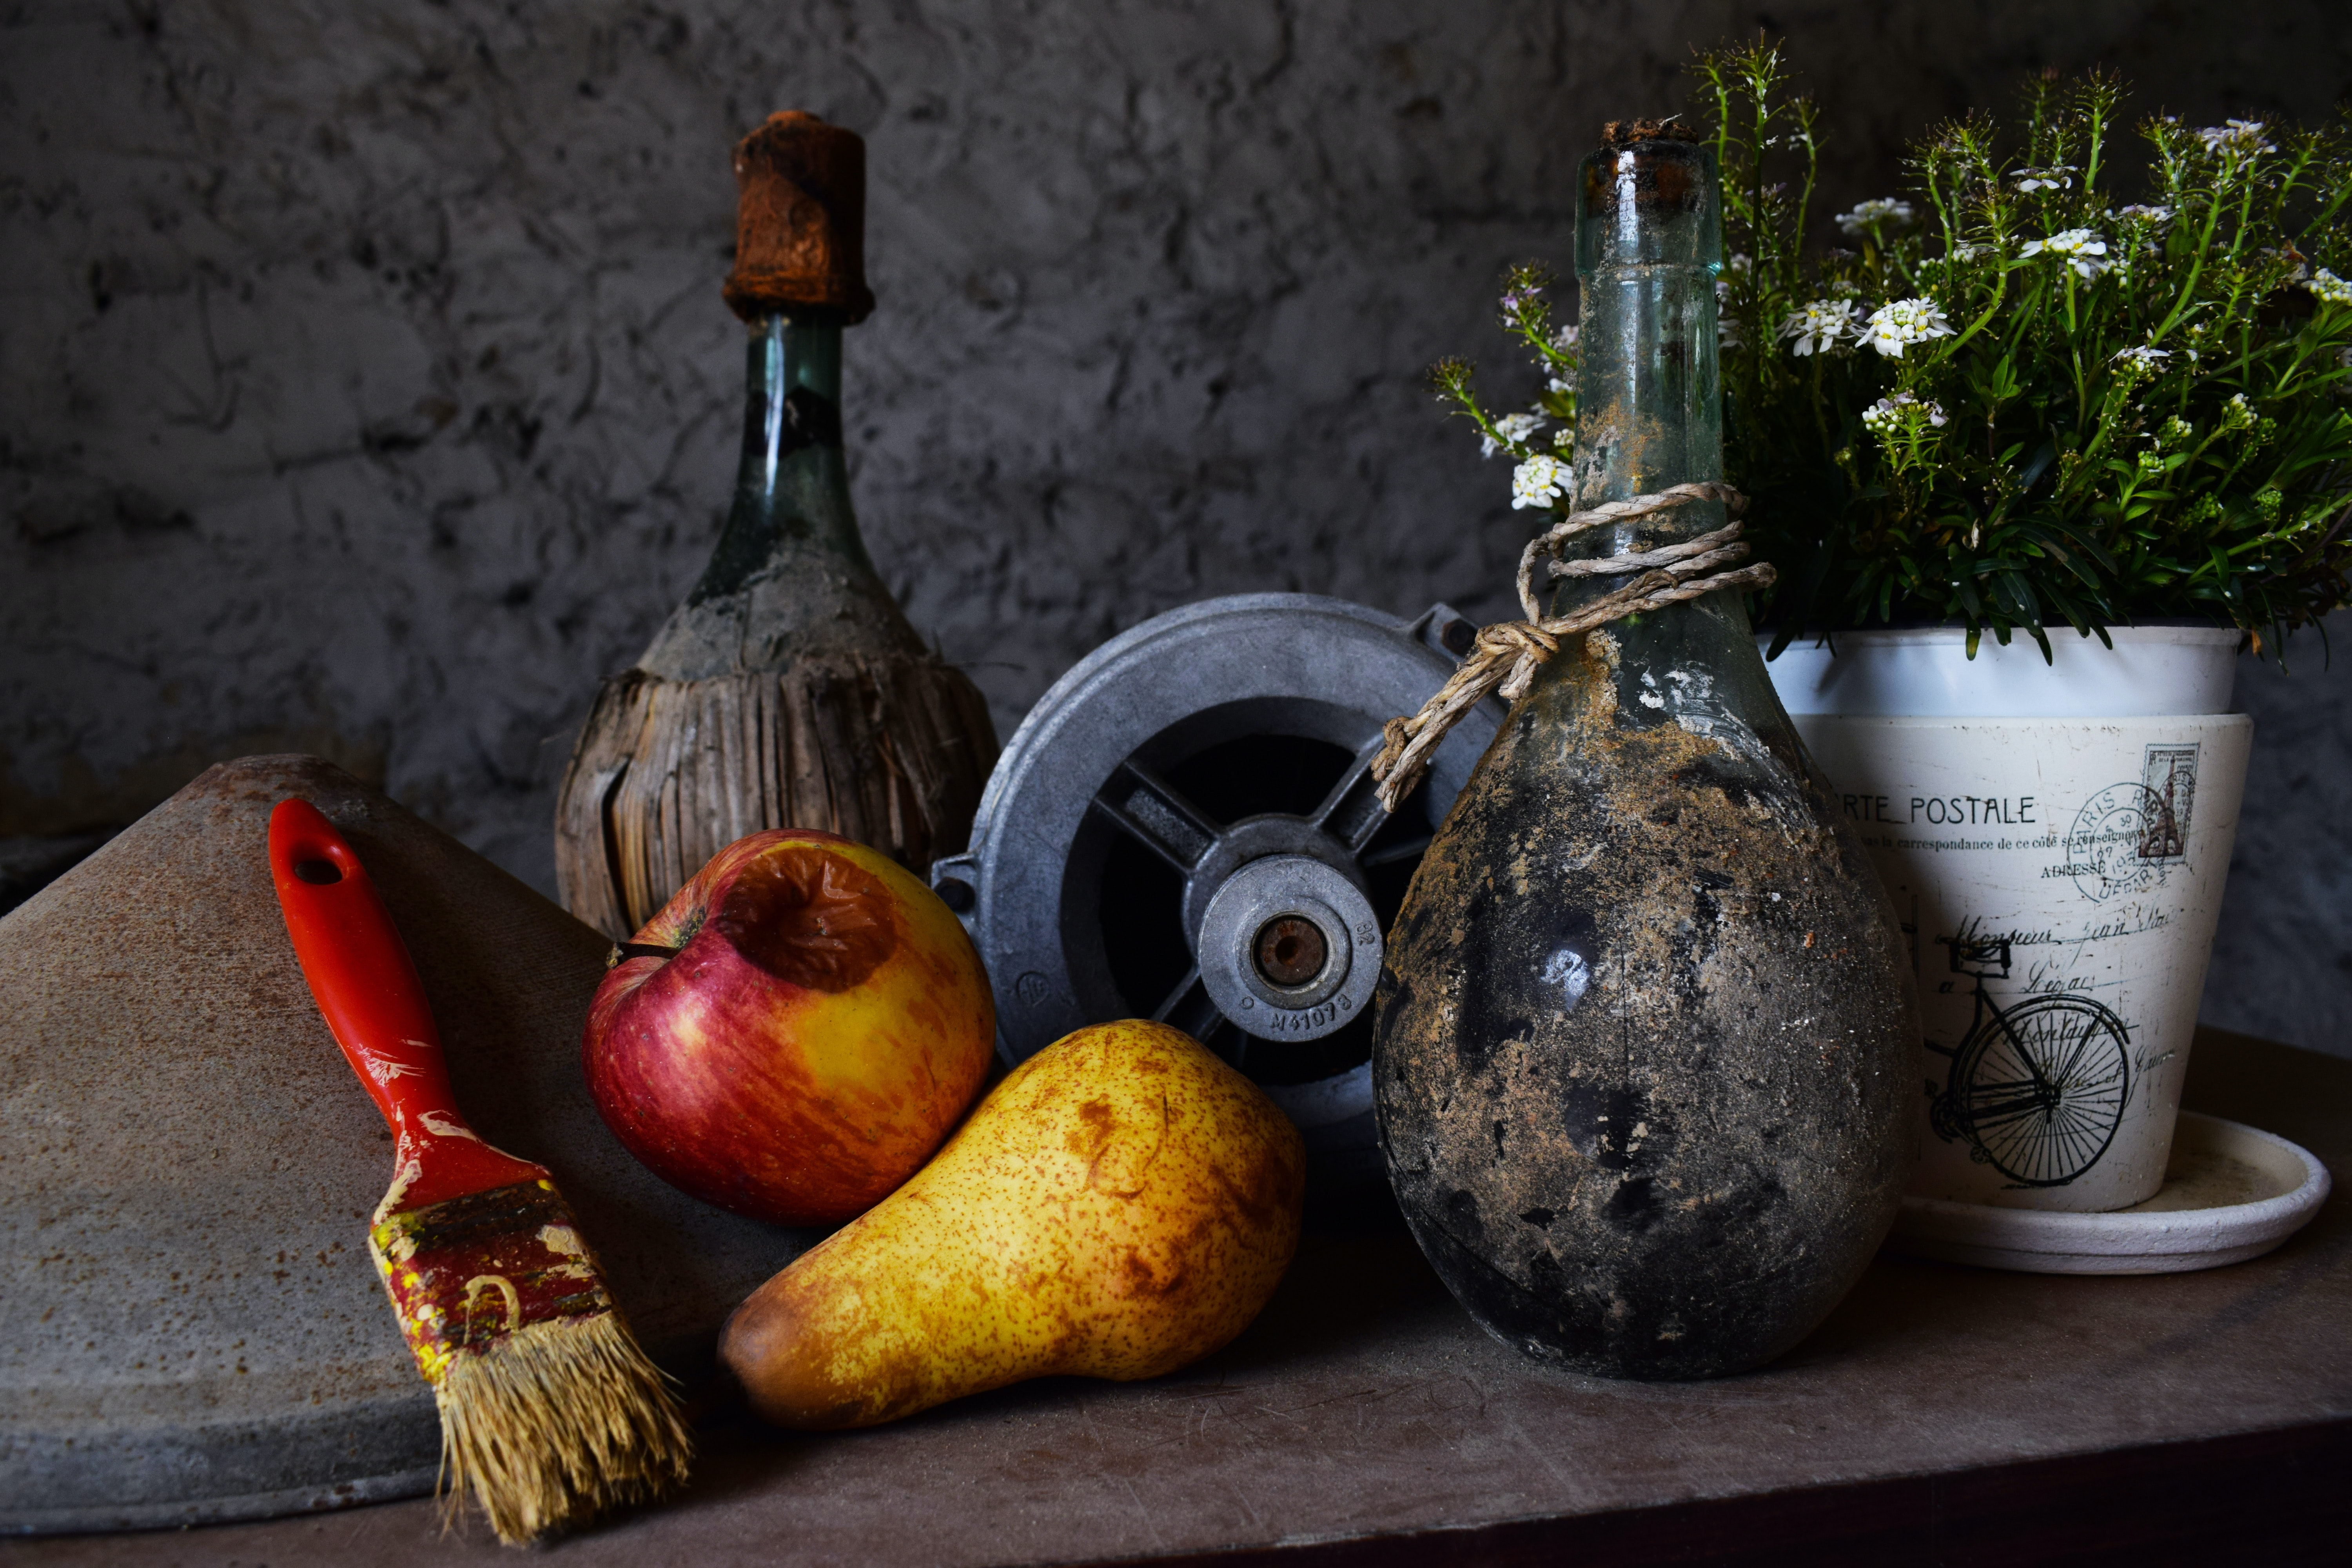 vase beside flower pot and fruits on table